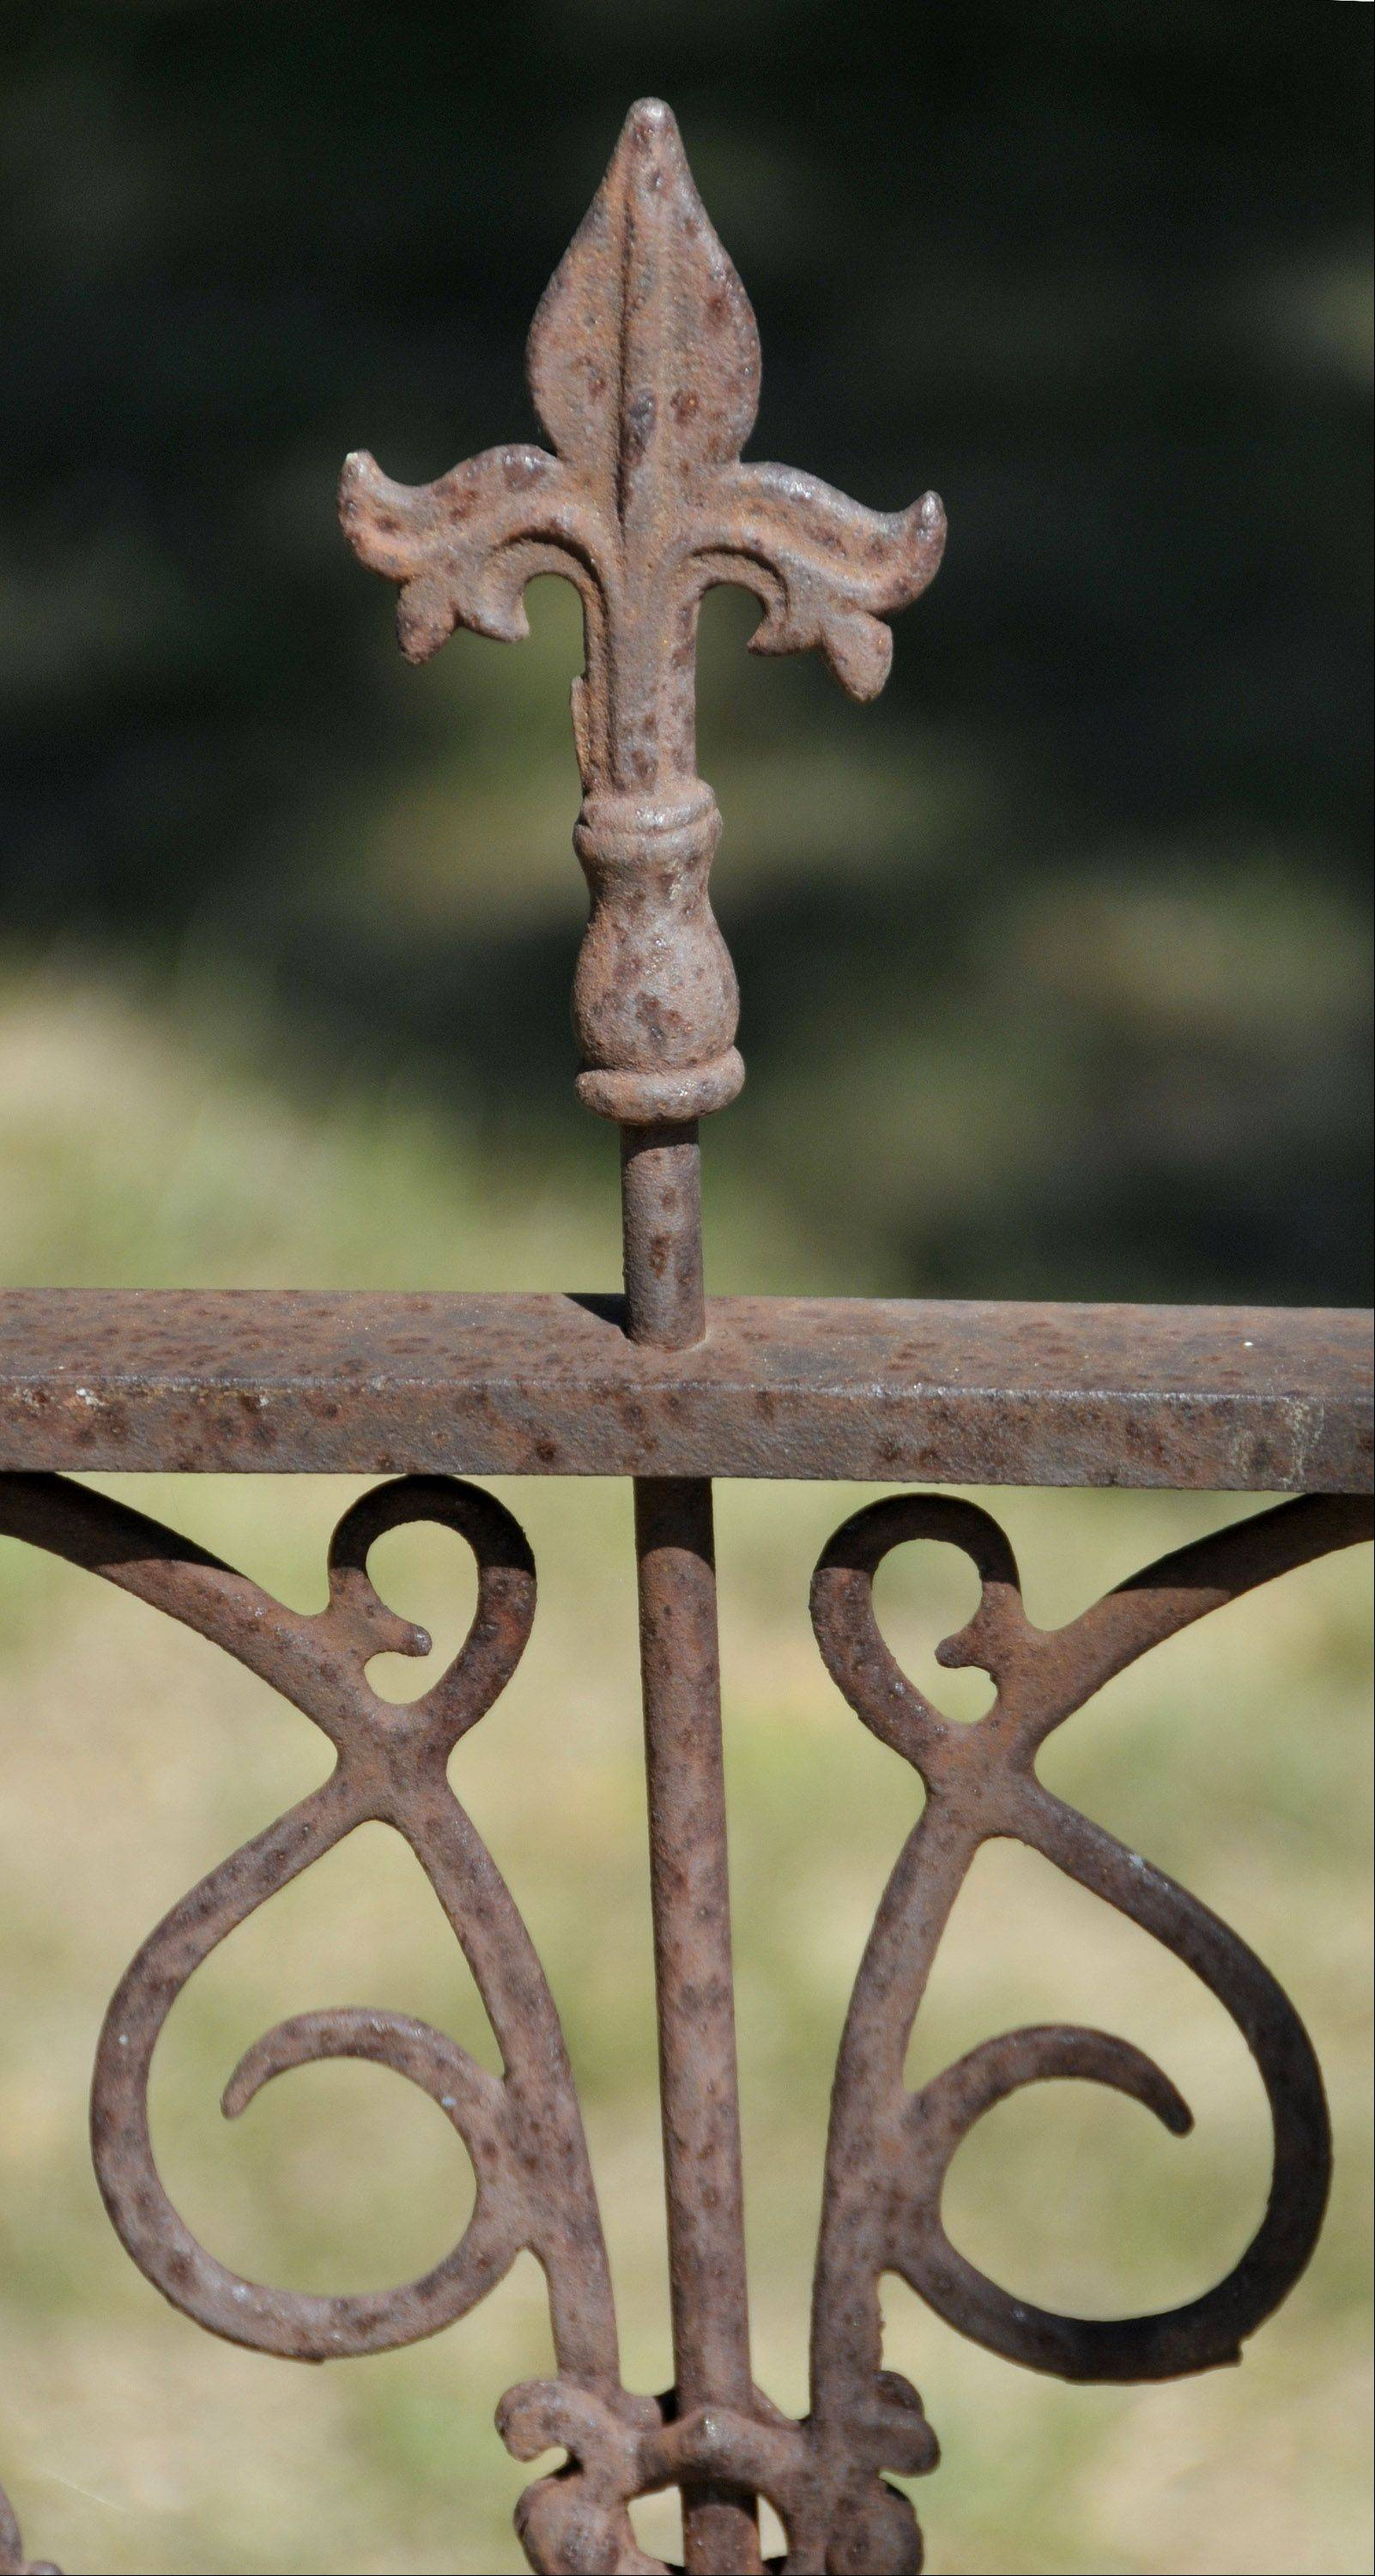 Ironworker Fred Gebbia repaired and installed this original wrought iron fence from the 1880s for a client in Wayne.